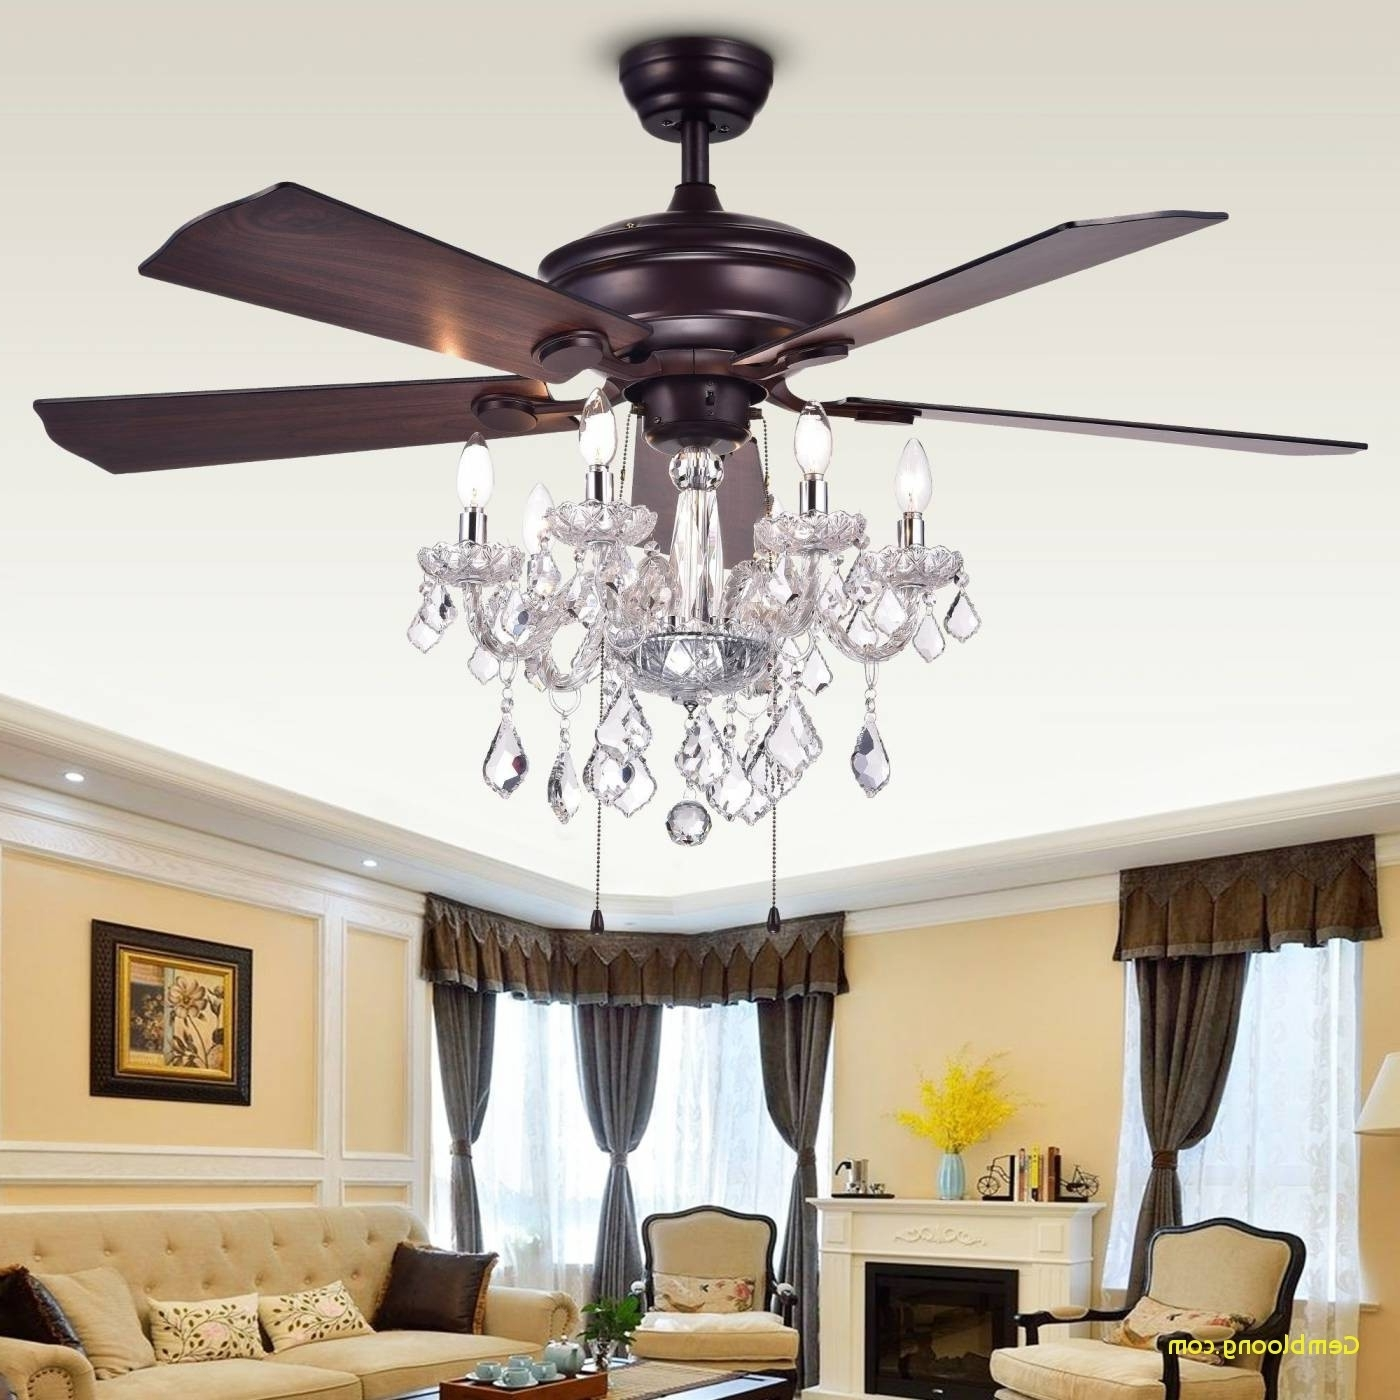 Famous Casa Vieja Ceiling Fans Elegant 40 New Chandelier Ceiling Fan Pertaining To Casa Vieja Outdoor Ceiling Fans (View 10 of 20)